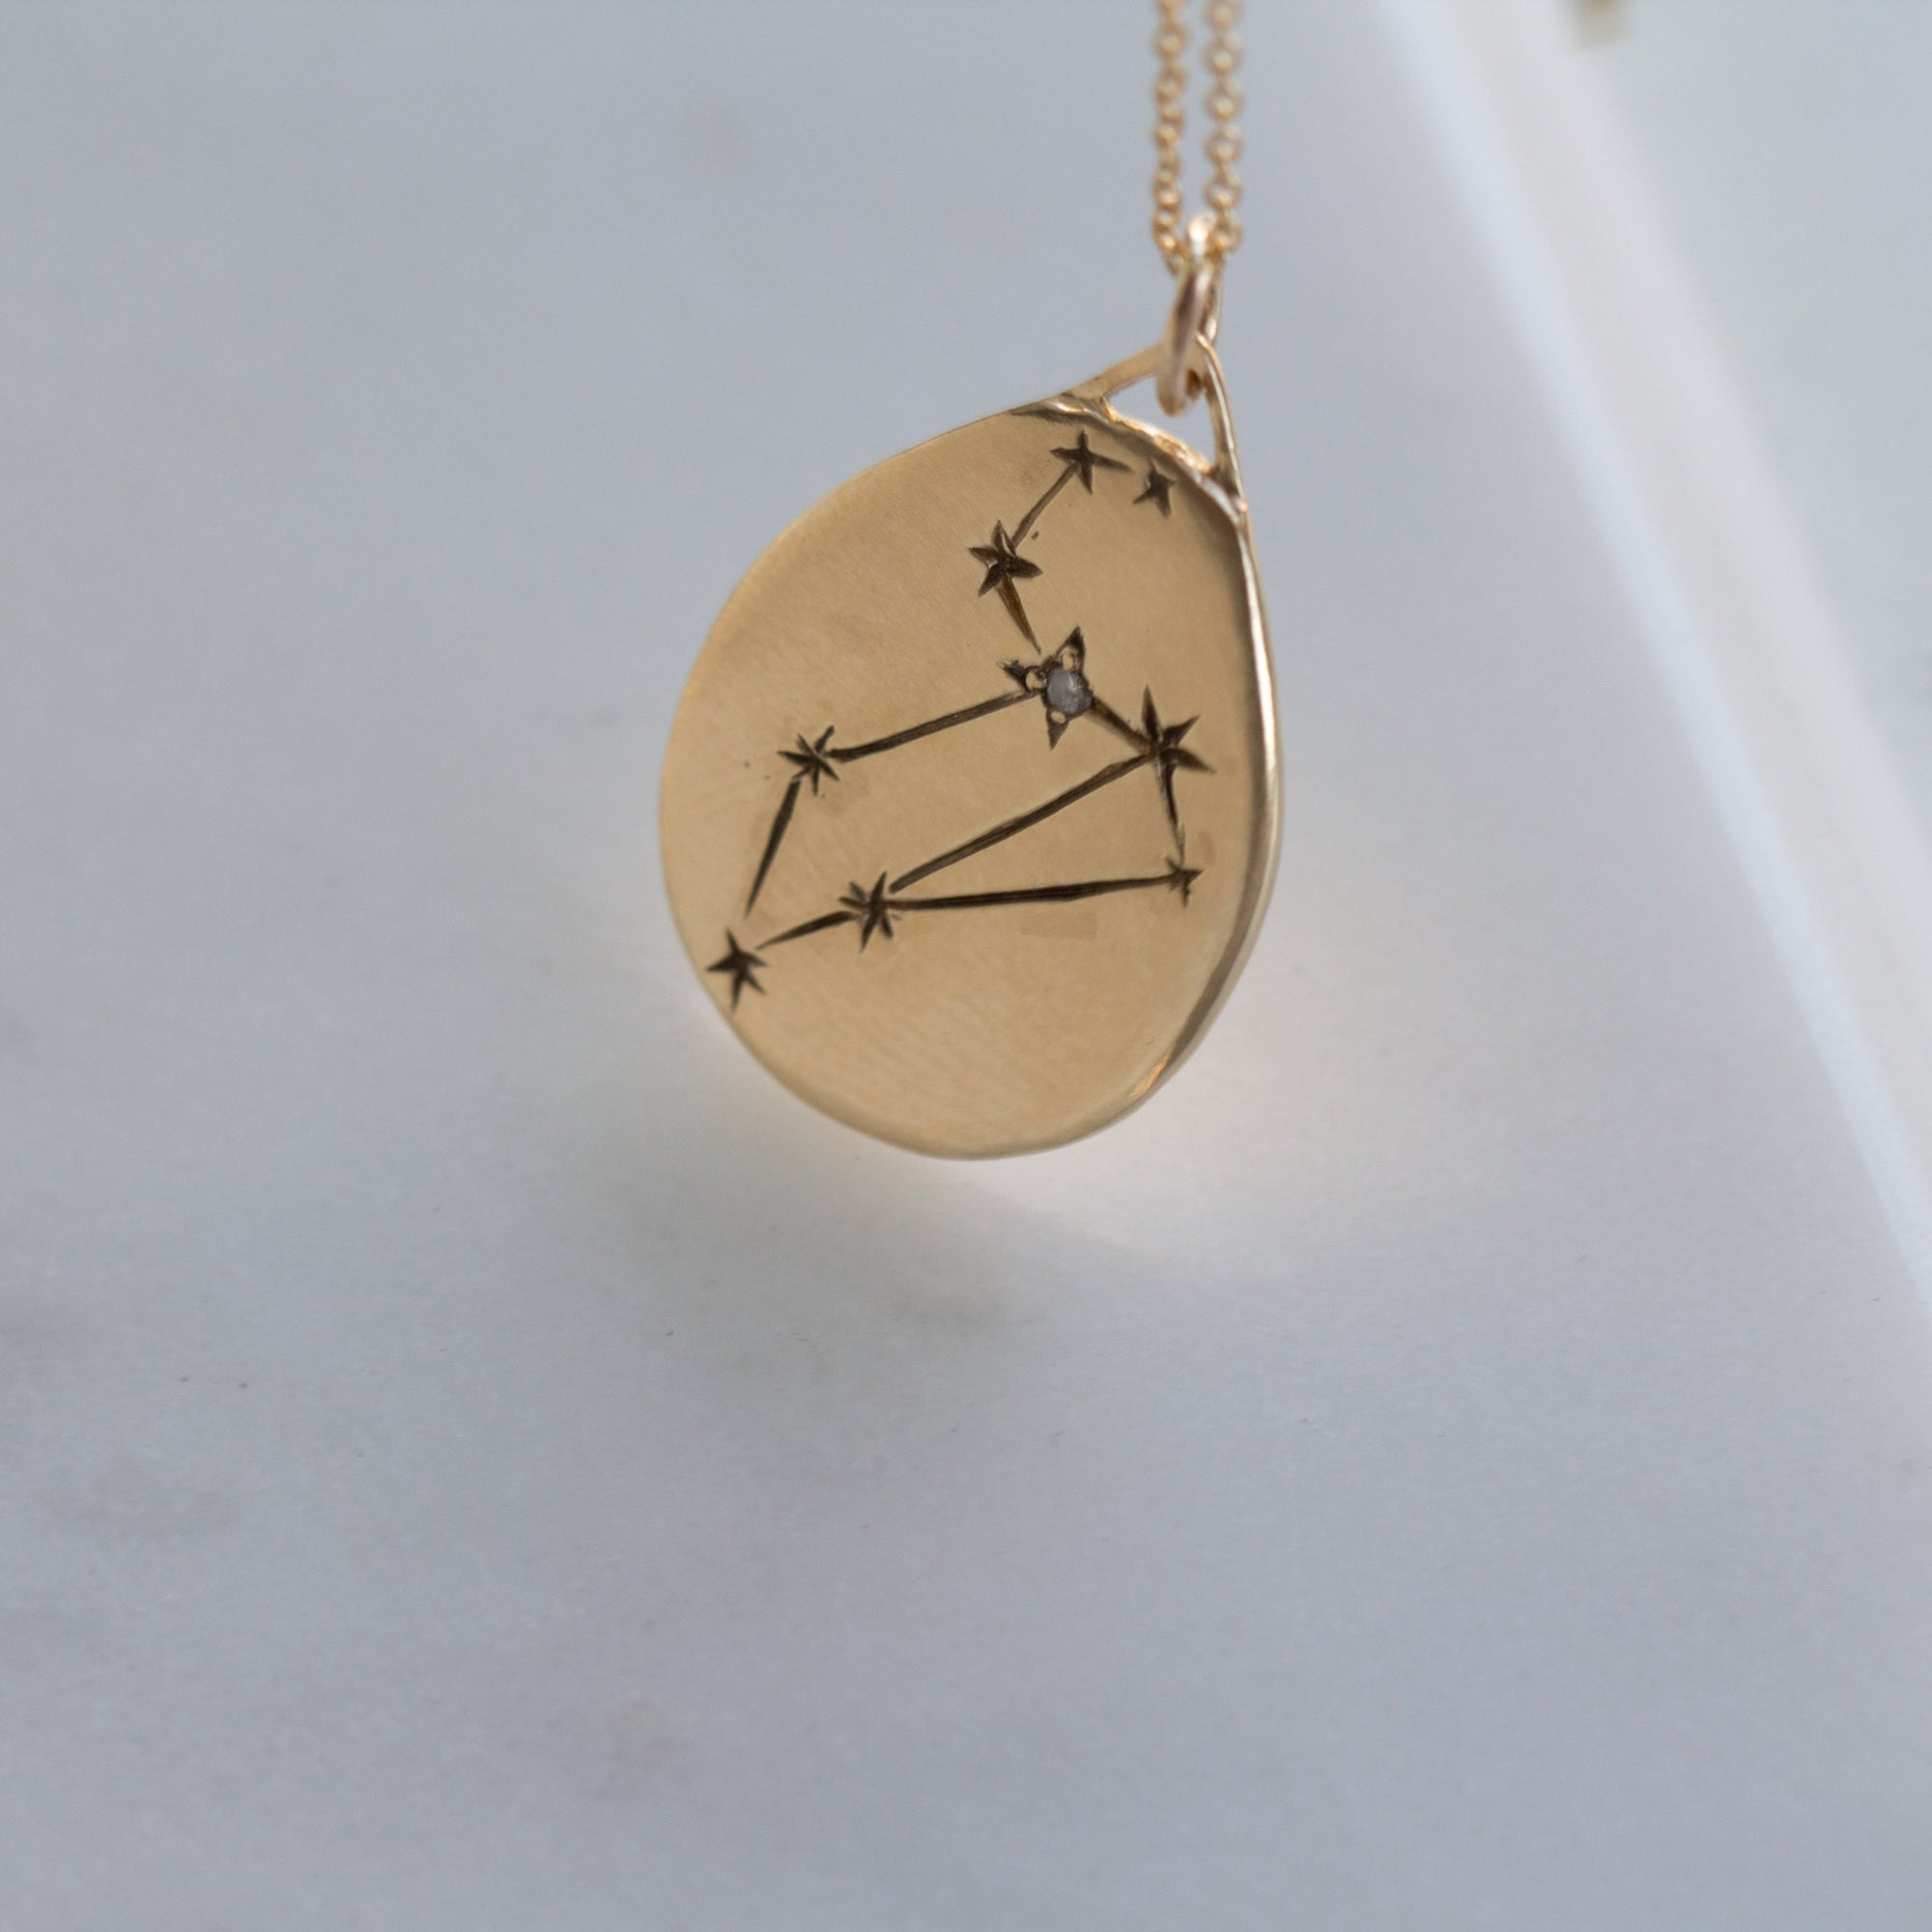 leo necklace, leo celestial necklace, celestial zodiac collection, 12th house jewelry, wear with love, ceremonial and celestial jewelry, jewelry for the zodiac lover, leo jewelry, holiday gift ideas for her, connect to your subconscious